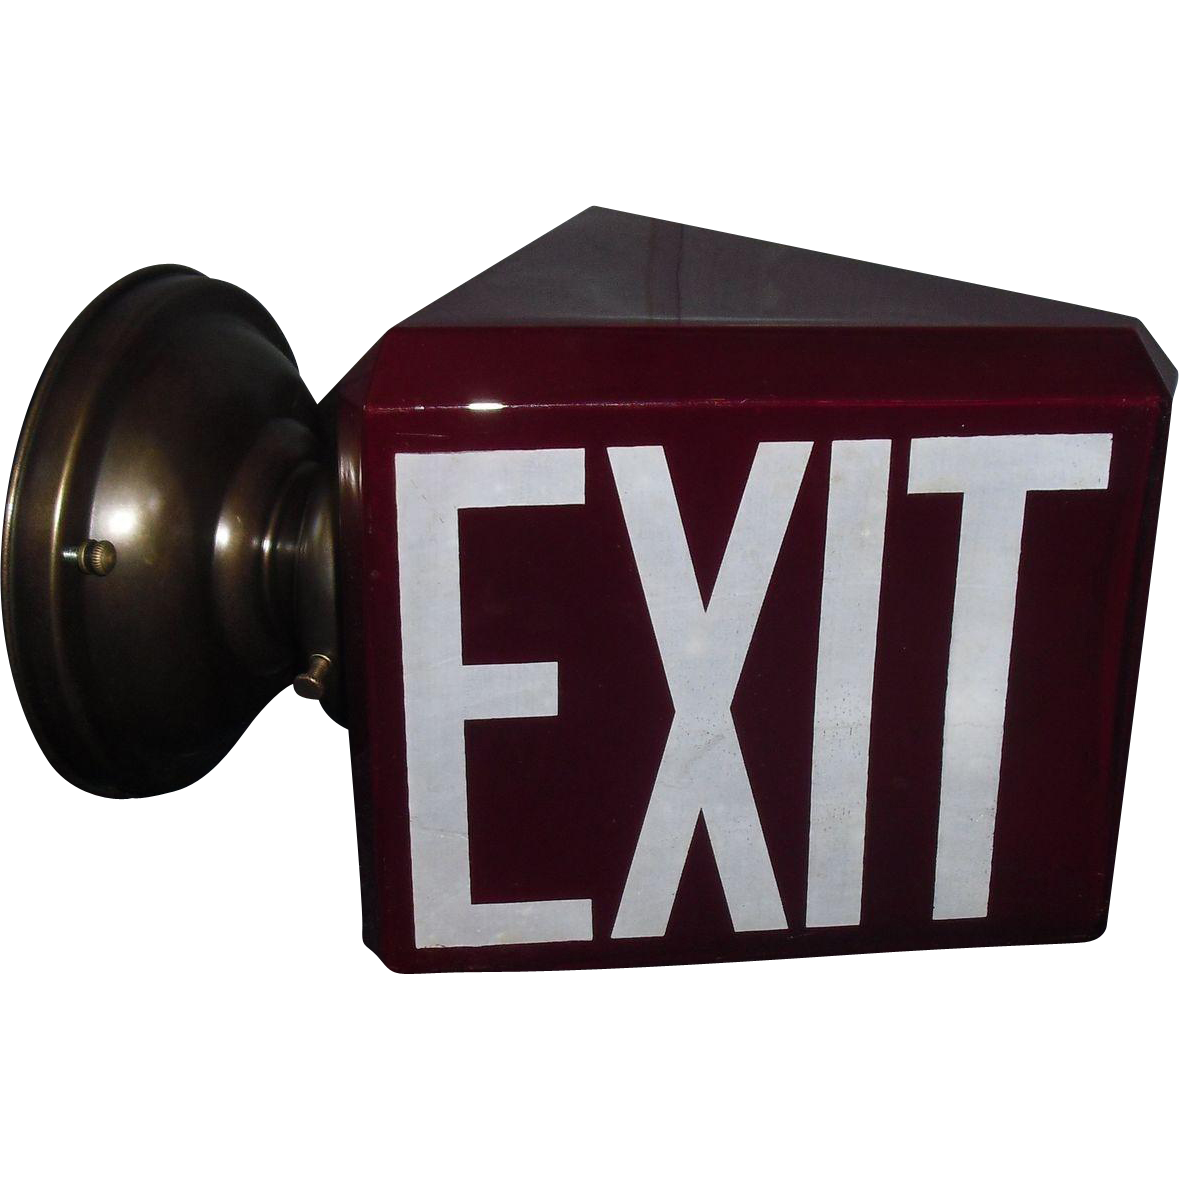 Ruby Red Triangular Exit Wall Light with Beveled Glass Edges